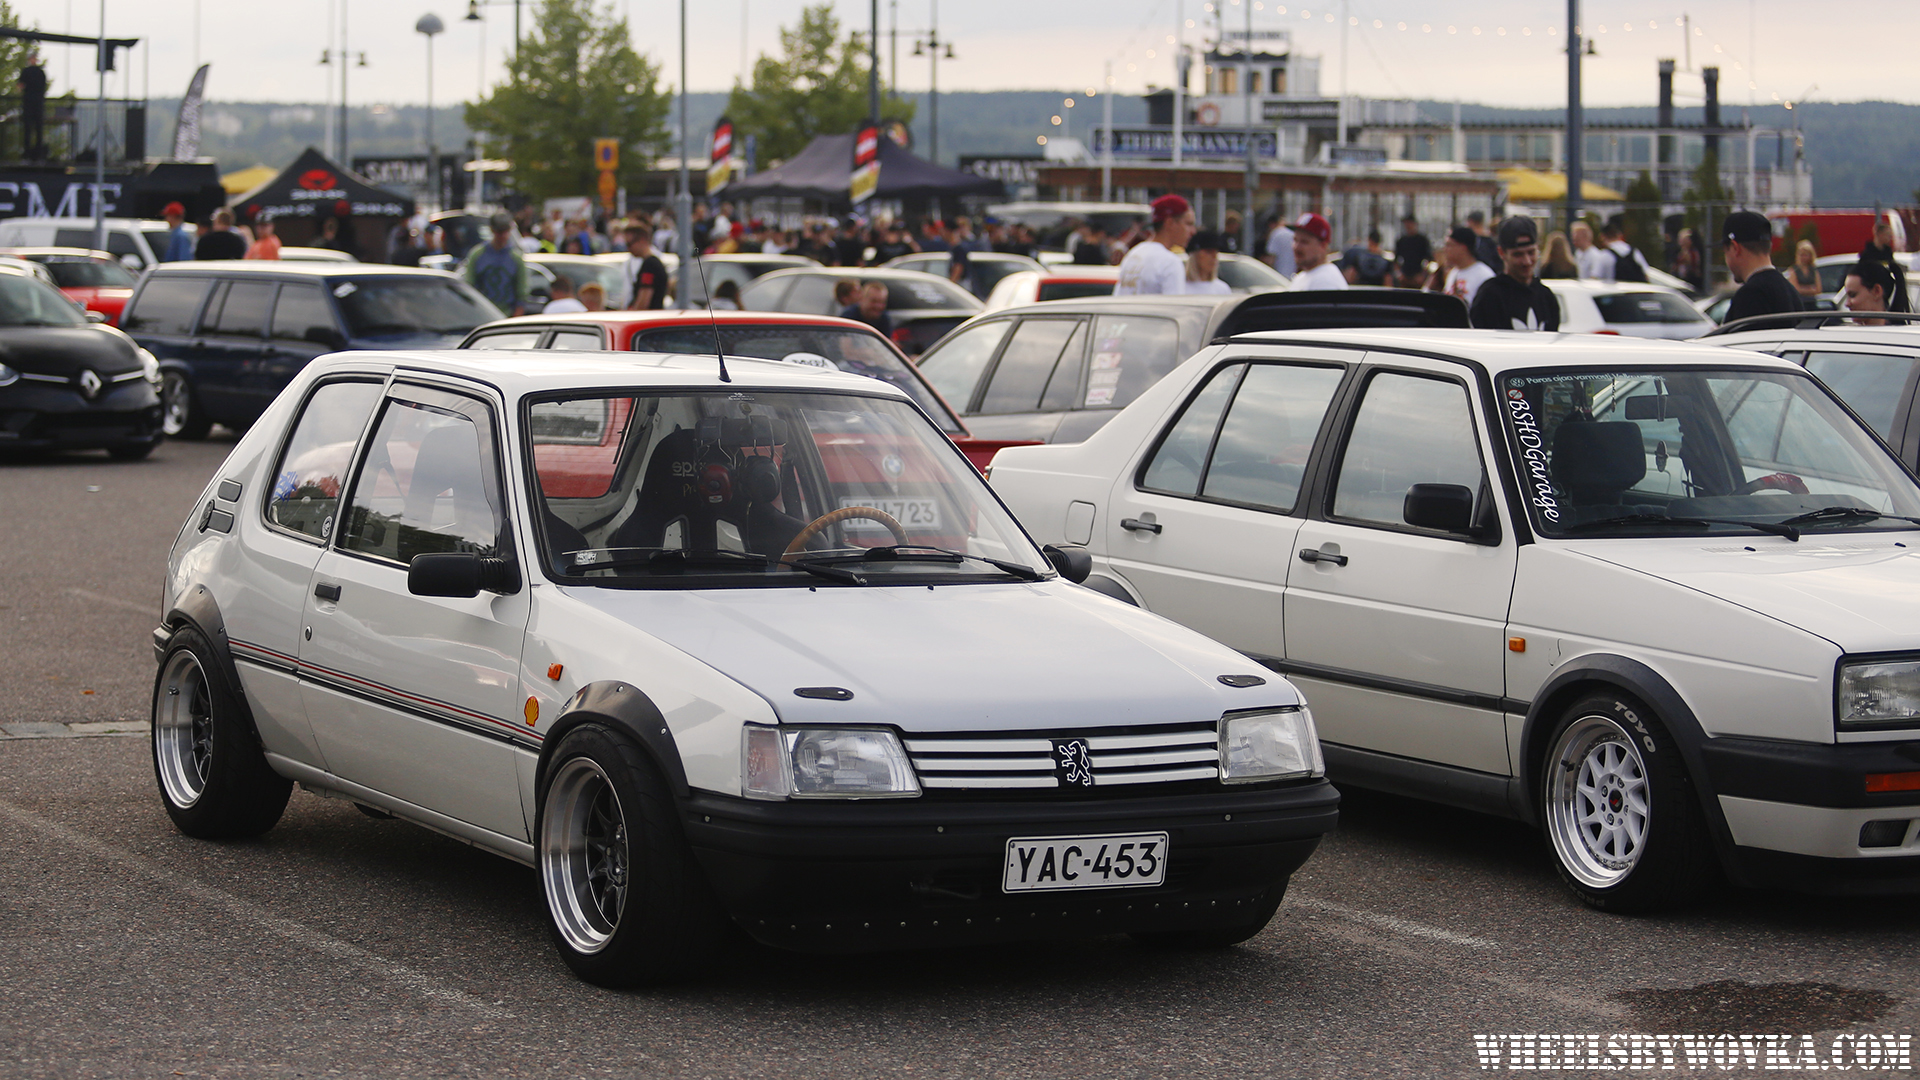 fitted-fest-lahti-finland-cdlcco-2018-by-wheelsbywovka-54